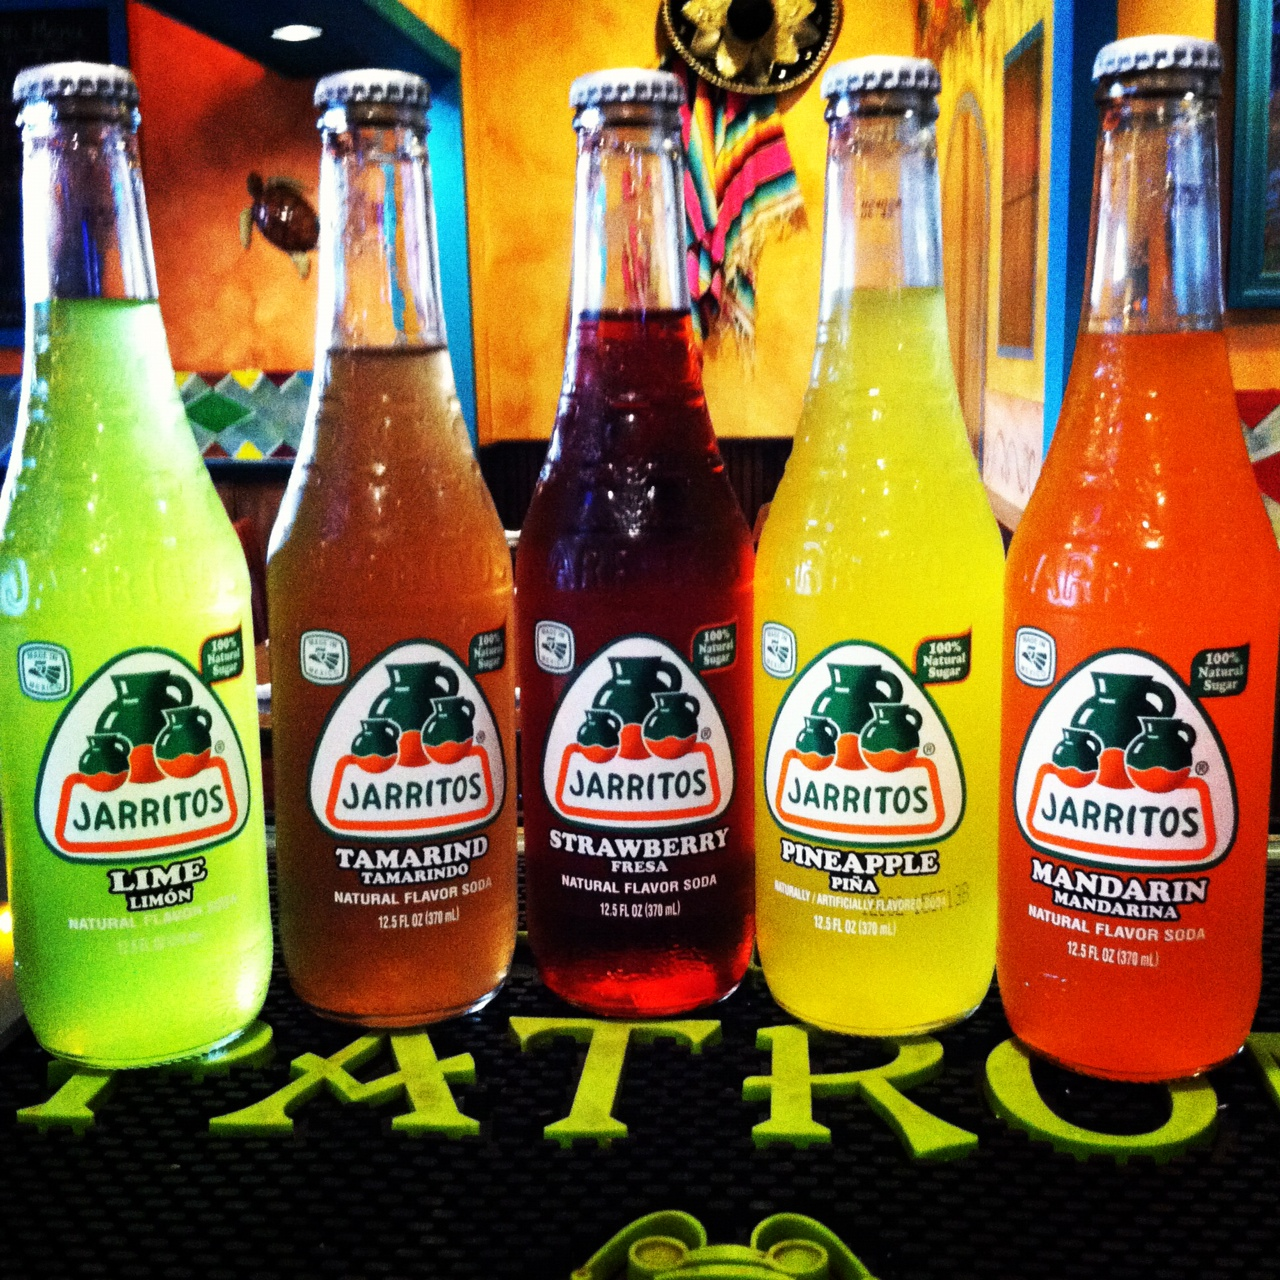 What's your favorite Jarritos?